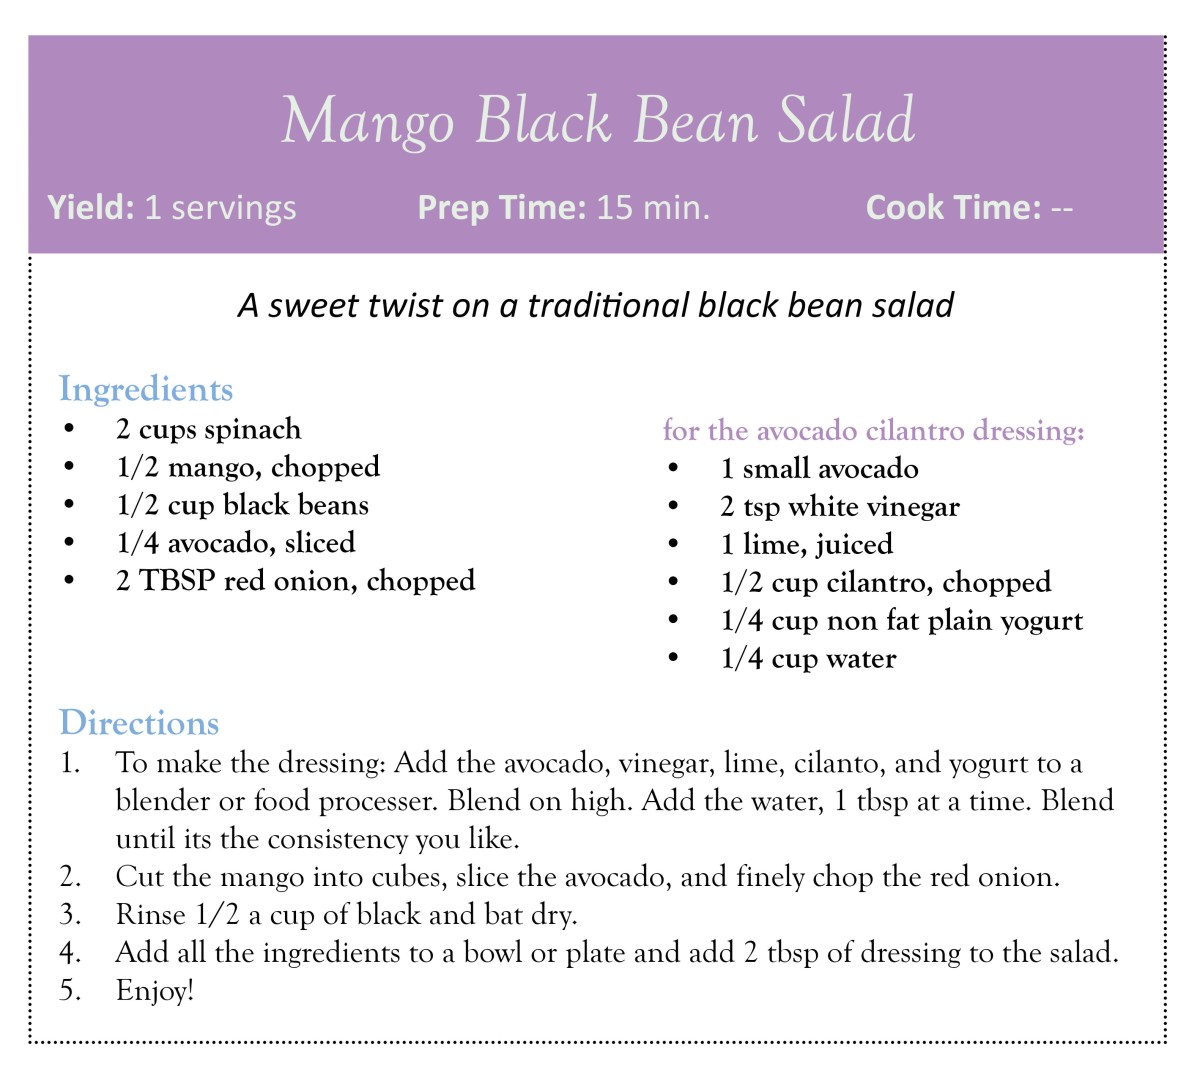 mango black bean salad.jpg